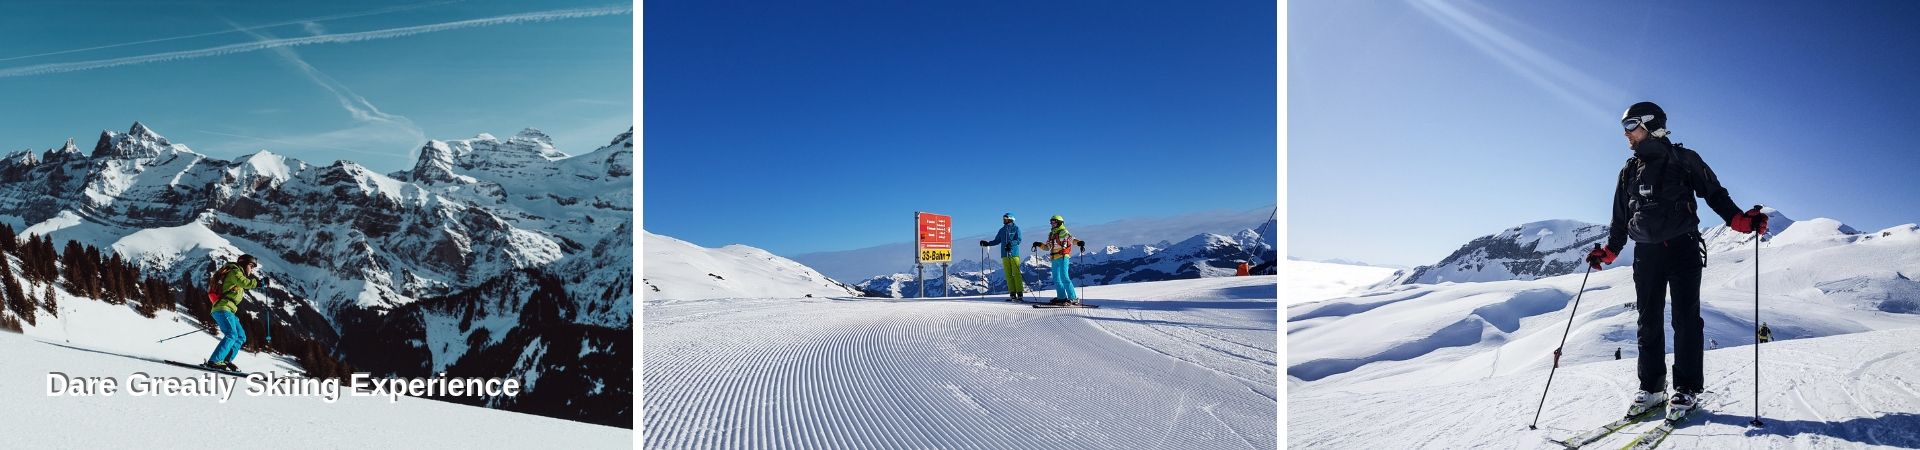 Dare Greatly | Skiing Experiences